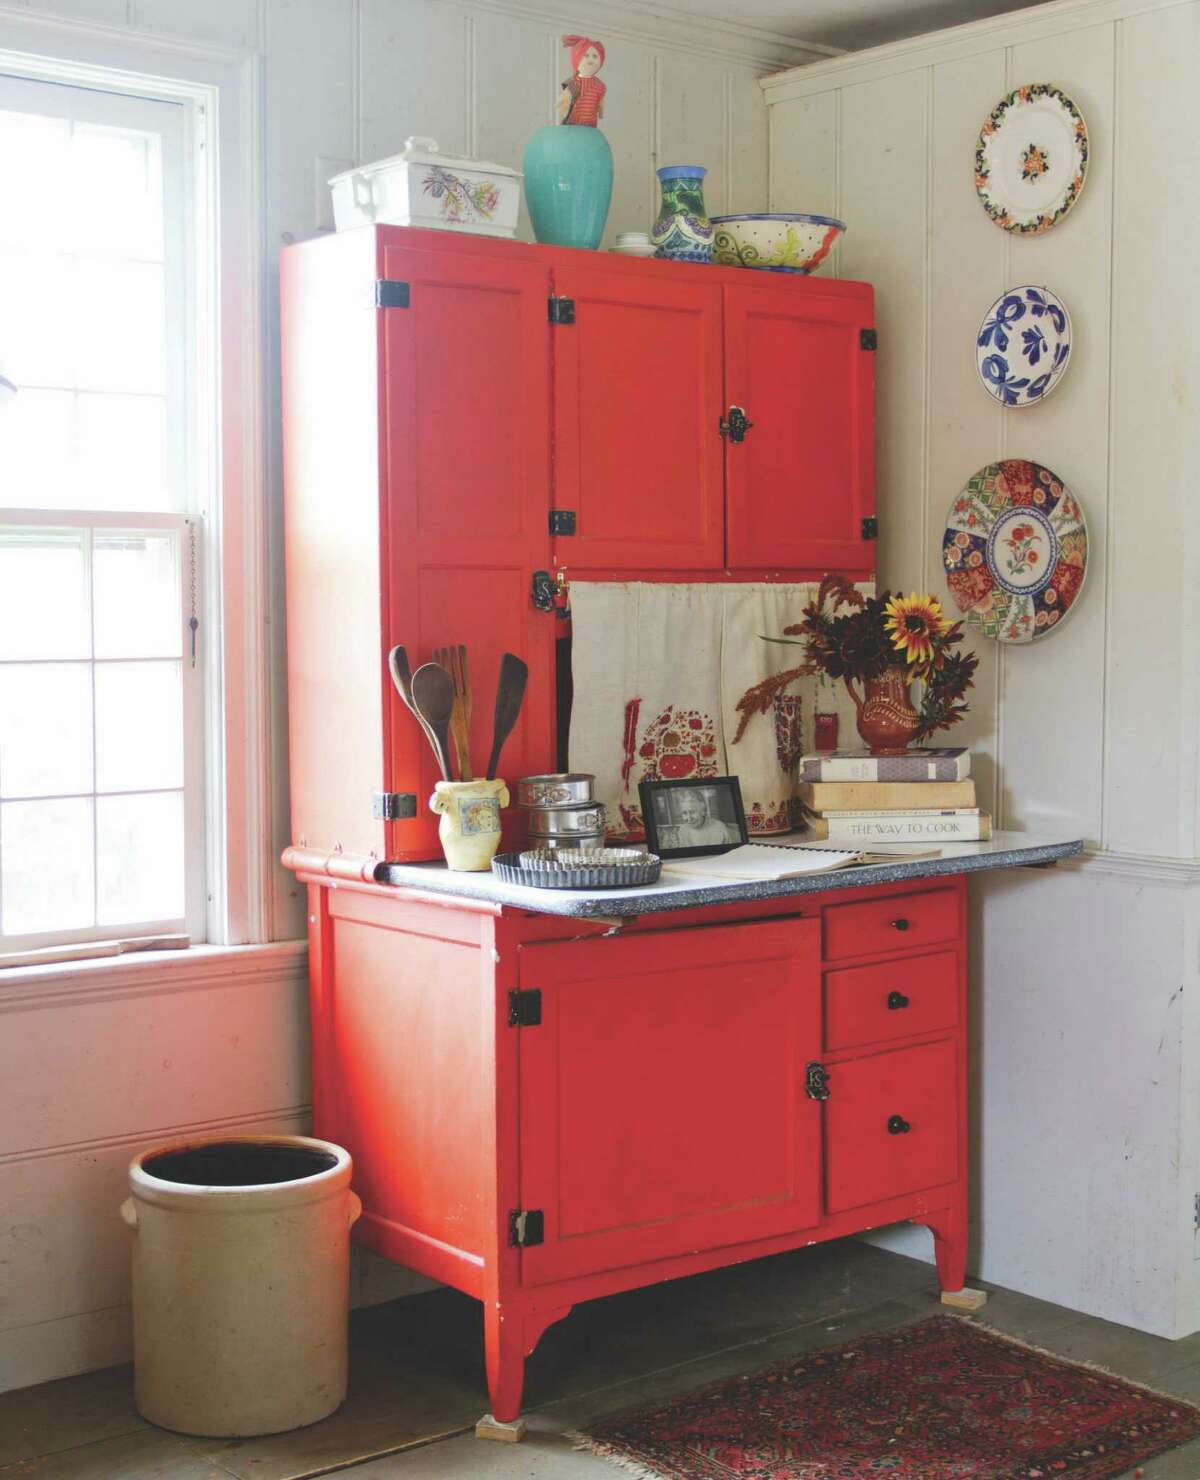 One bold piece of furniture can brighten a room. Kristin Nicholas designed her kitchen around this antique cupboard, painted red. Colorful plates on the wall add shades of blue, green and more.